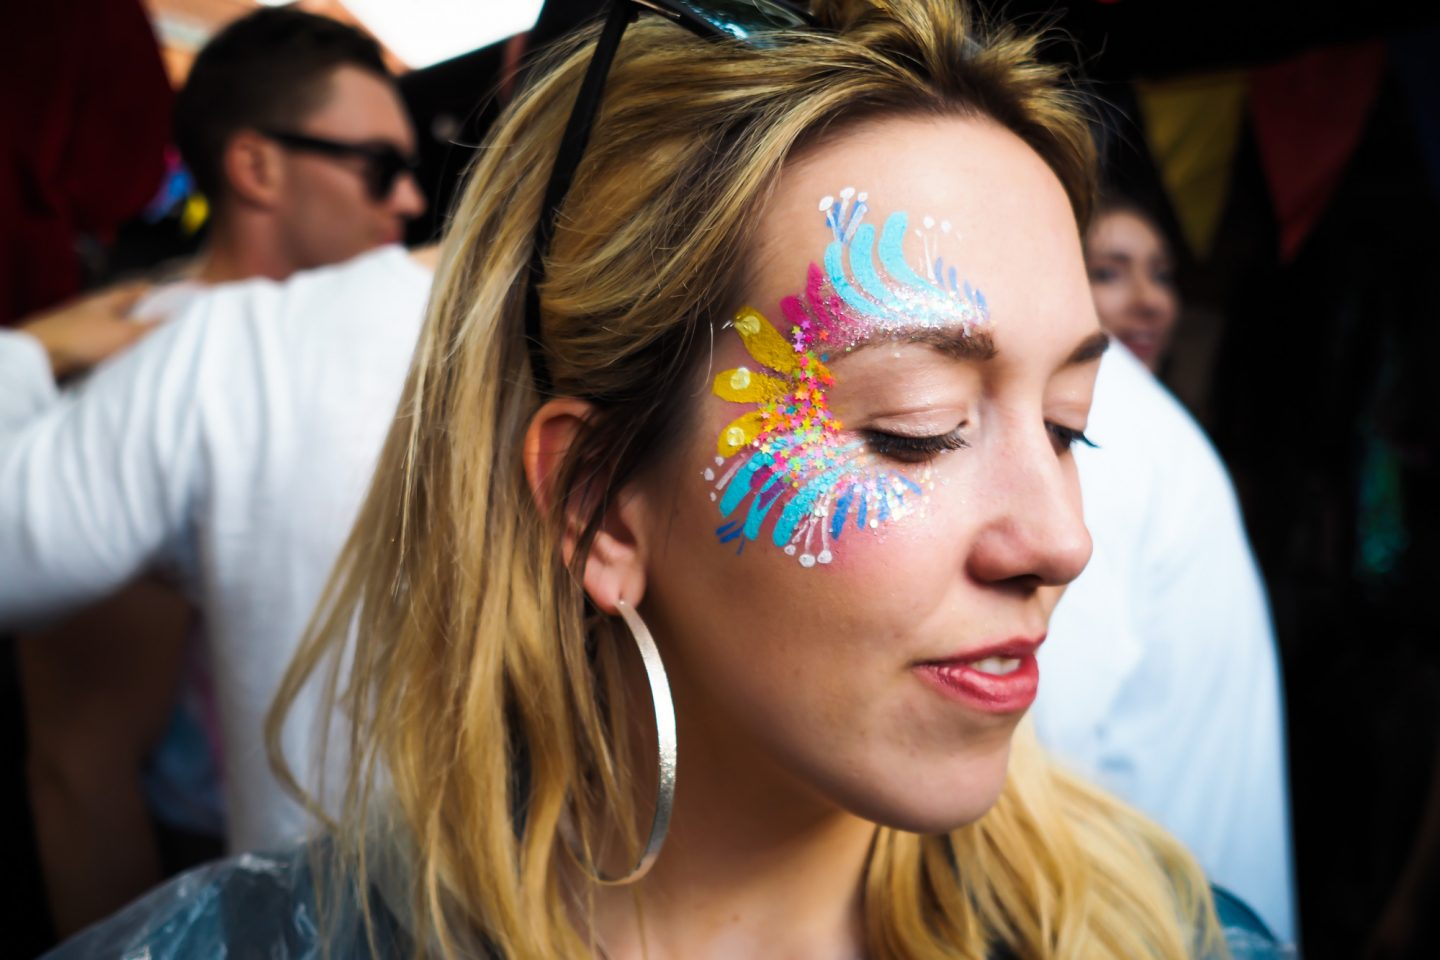 Pretty festival face paint with glitter by The Fashpack